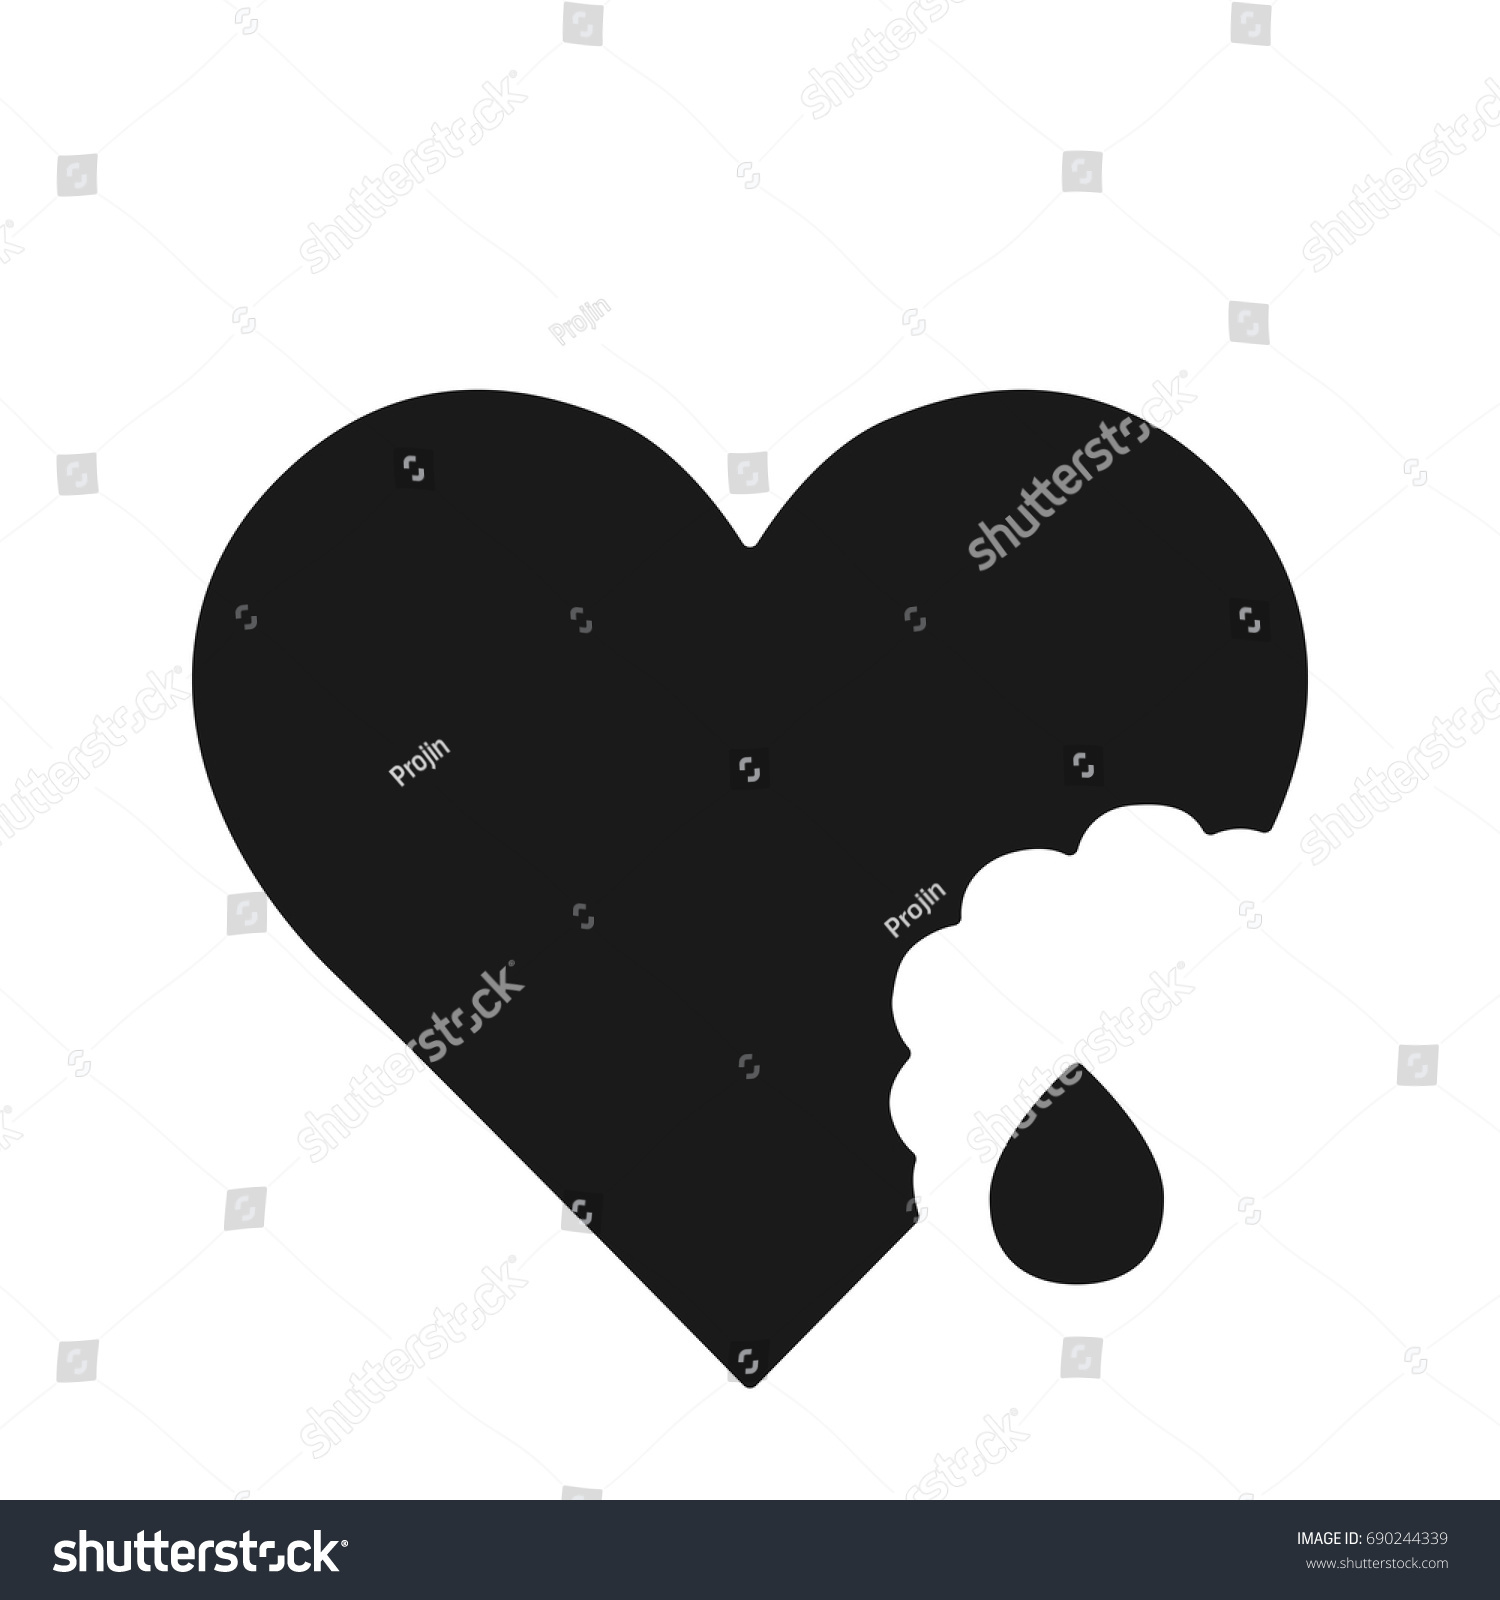 Shape symbolic heart ivy leaf black stock vector 690244339 the shape of a symbolic heart or an ivy leaf black heart icon vector biocorpaavc Gallery